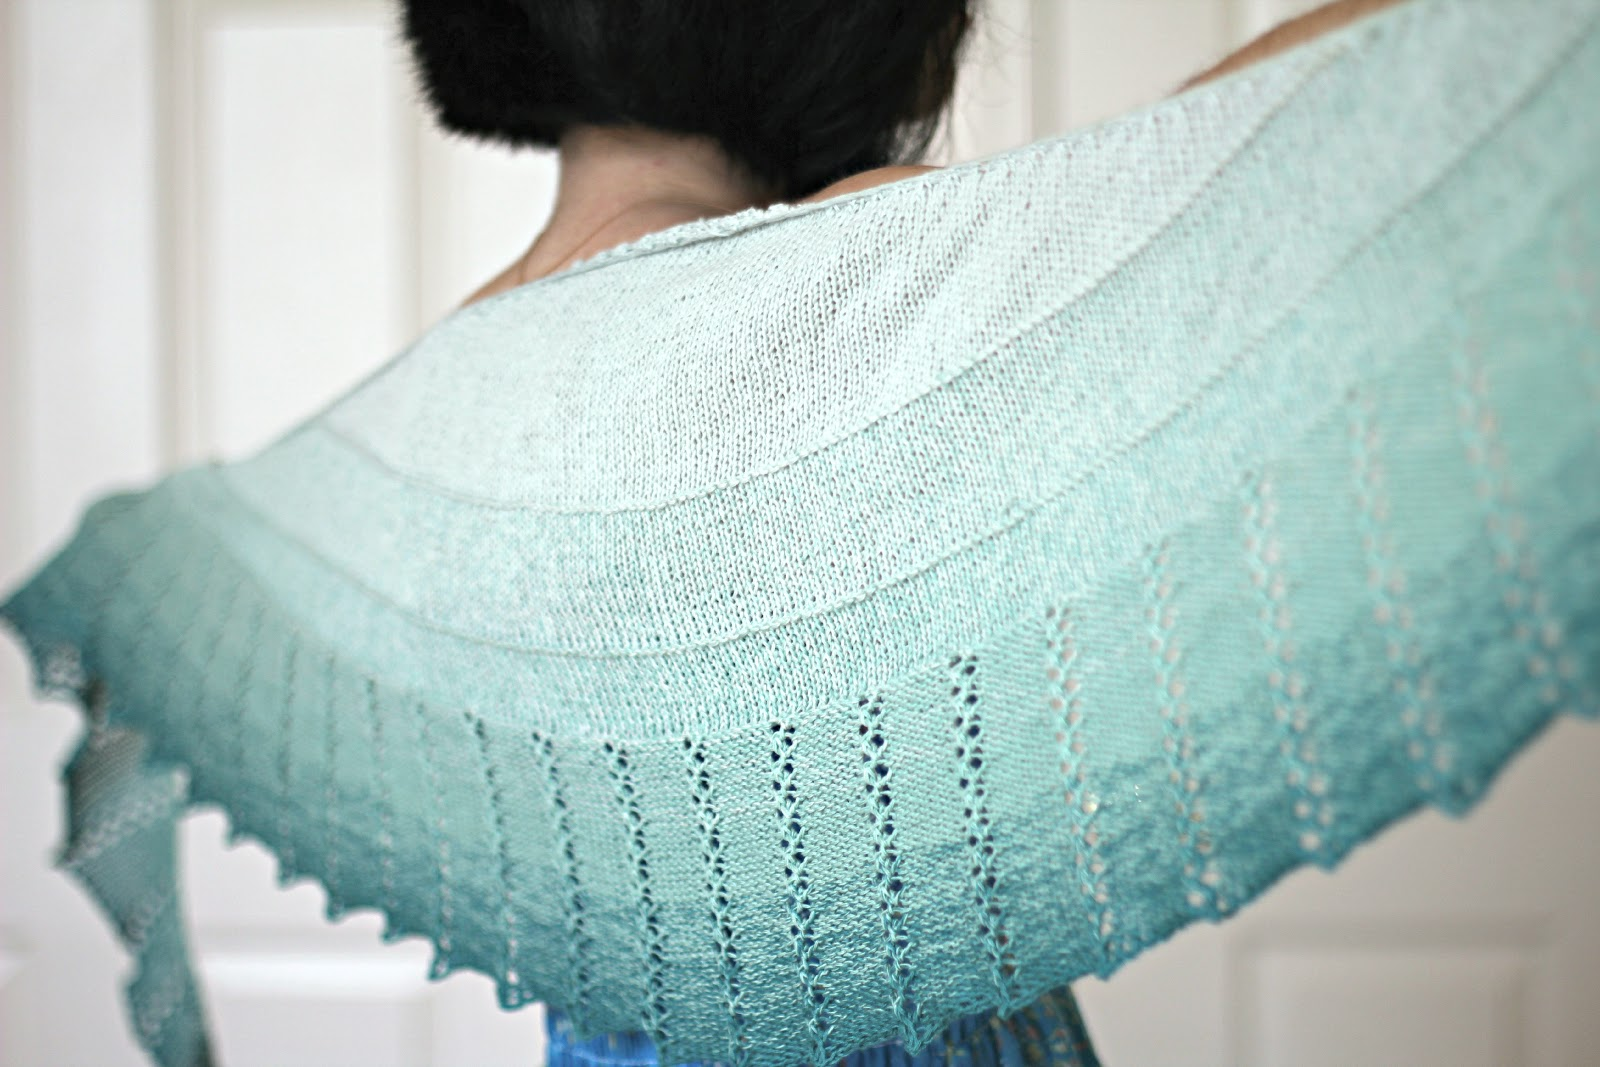 Free Knitting Patterns Teddy Bears : KGThreads blog: Spearmint Tea shawl - free pattern!